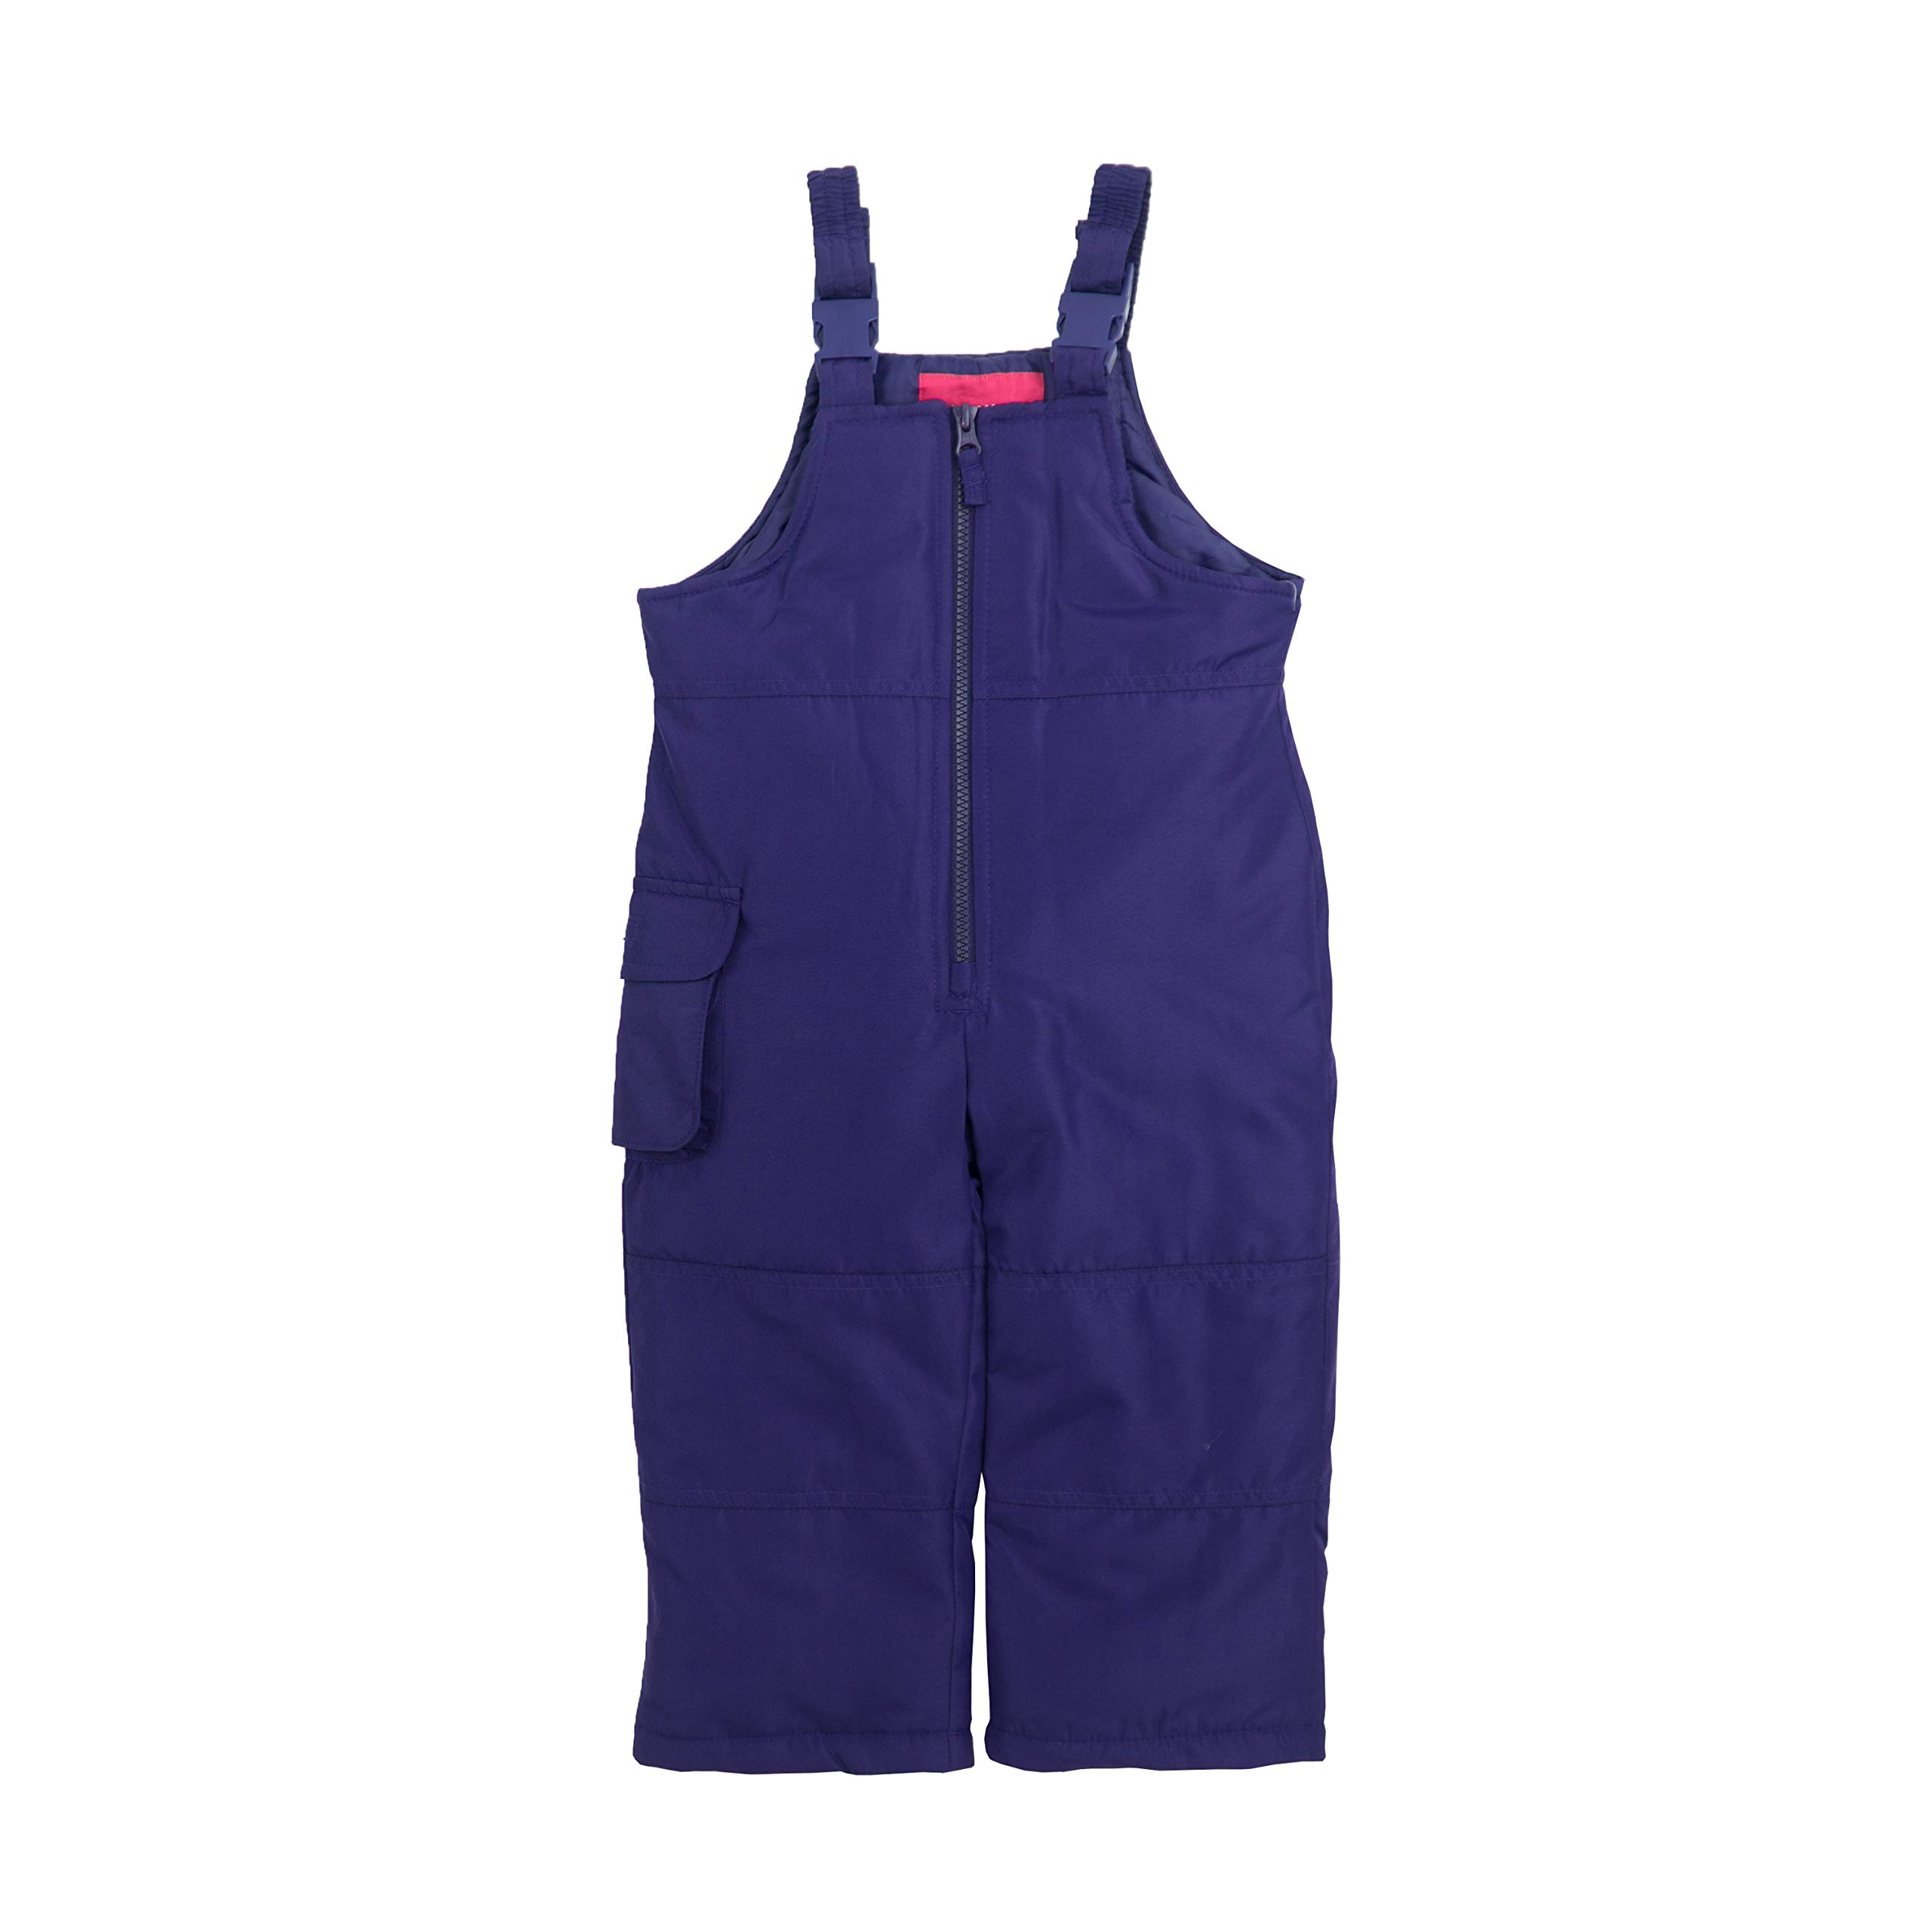 London Fog Girls' Little Classic Snow Bib Ski Snowsuit, Punk Purple, 5/6